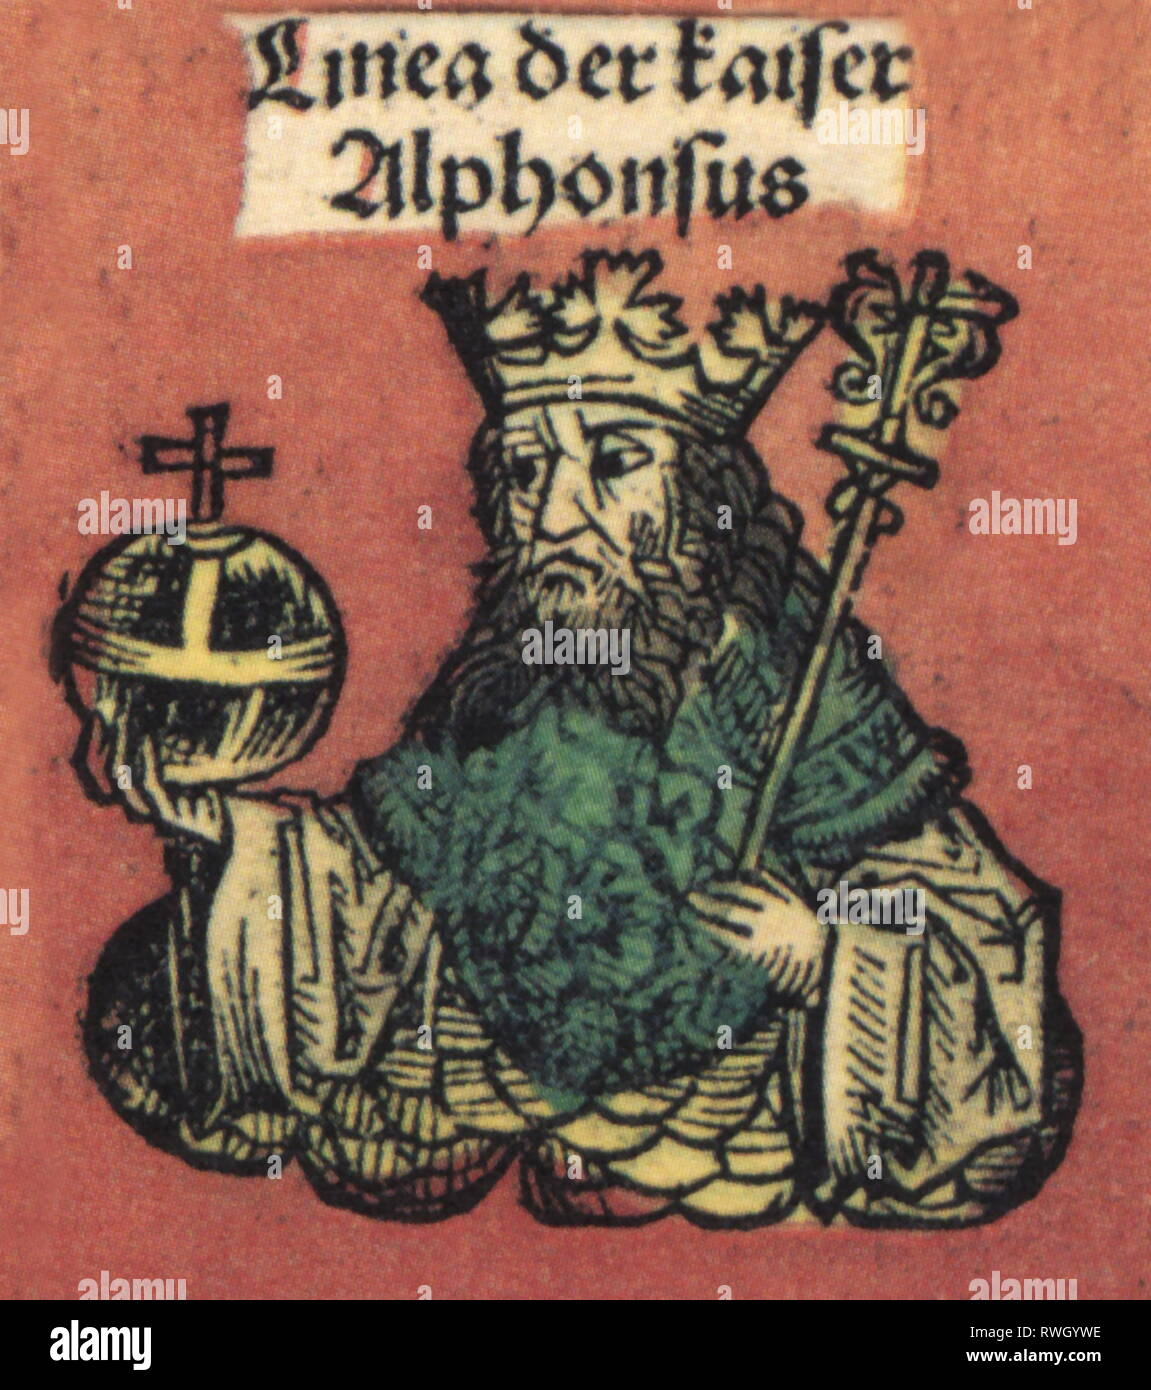 Alfonso X. 'the Wise', 26.11.1221 - 4.4.1284, King of Castile and Leon 30.5.1252 - 4.4.1284, German King 1257 - 1273, half-length, woodcut by Michael Wolgemut or William Pleydenwurff to the chronicle of Hartmann Schedel, Nuremberg, 1493, Artist's Copyright has not to be cleared - Stock Image